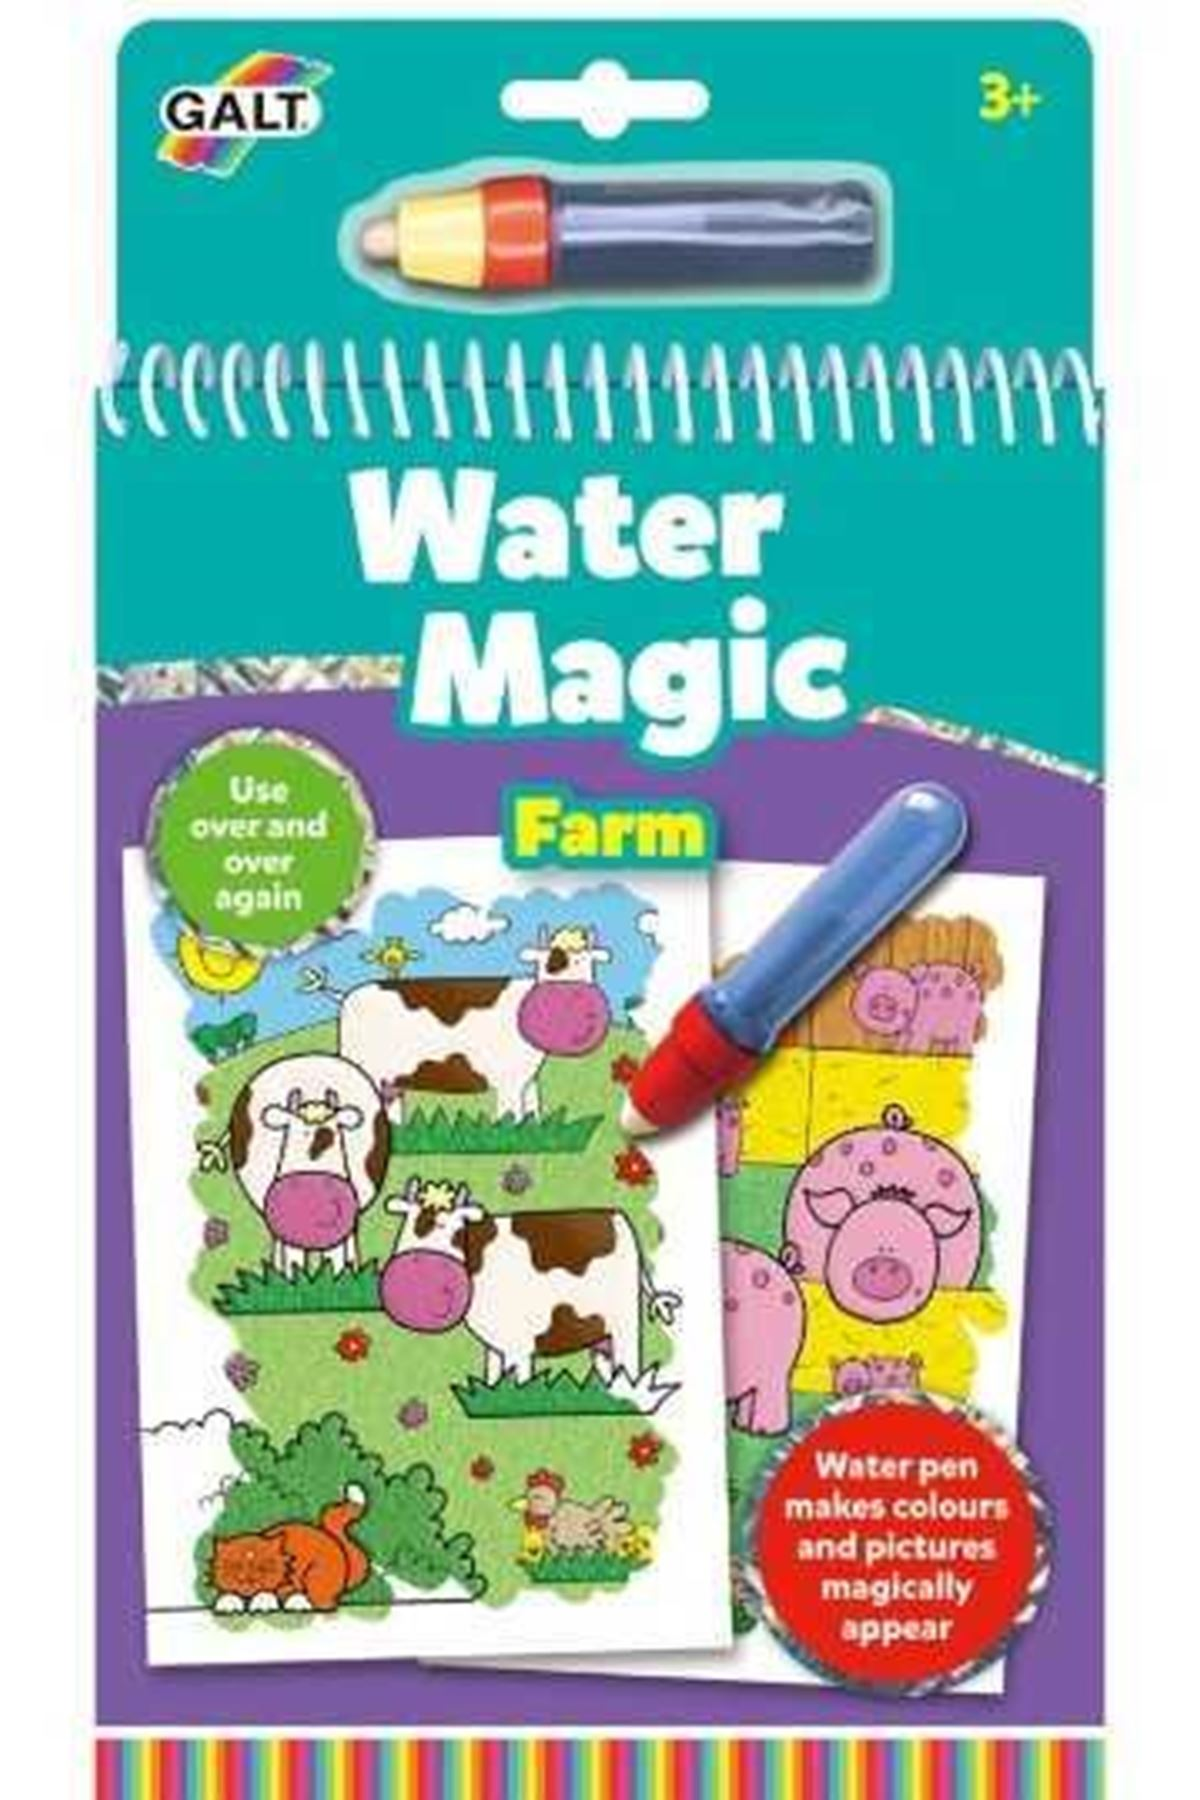 Galt Water Magic Sihirli Kitap Çiftlik 3 Yaş+